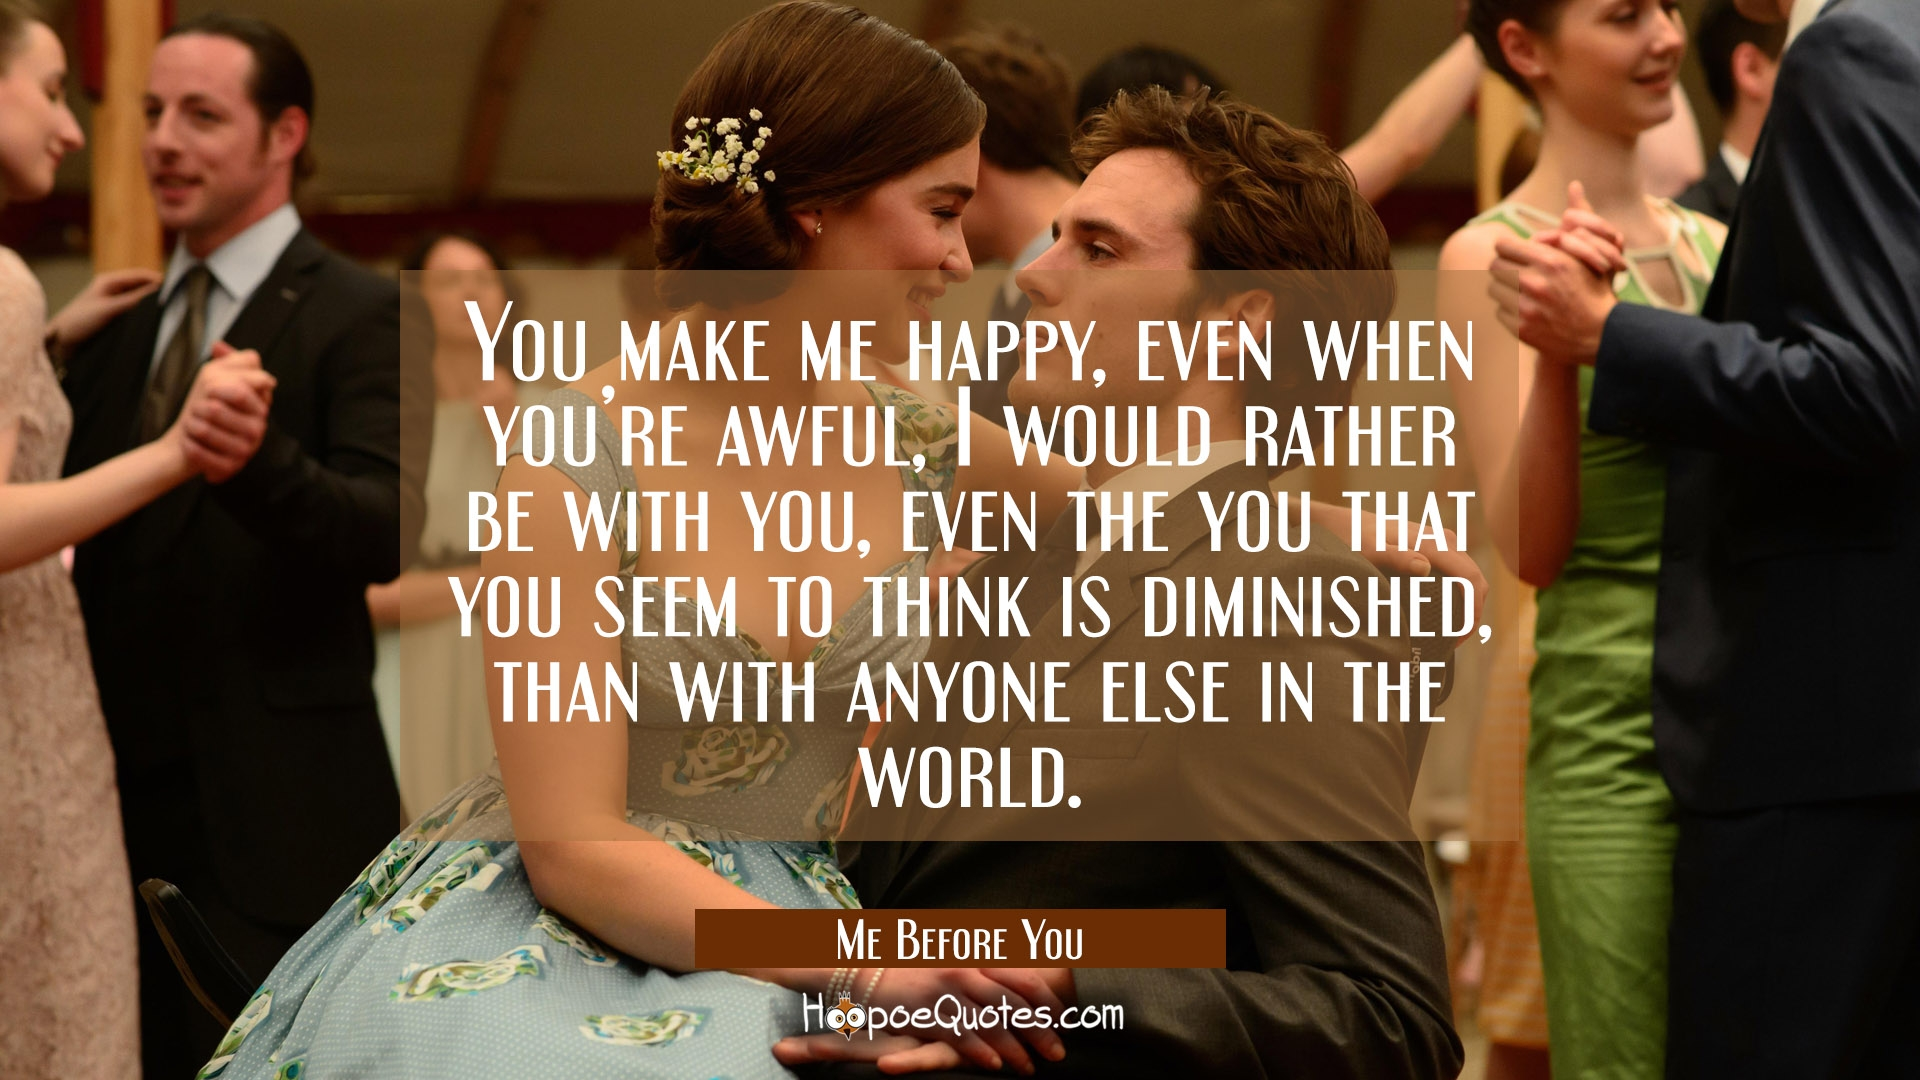 Me Before You Quotes Fascinating You Make Me Happy Even When You're Awful I Would Rather Be With .